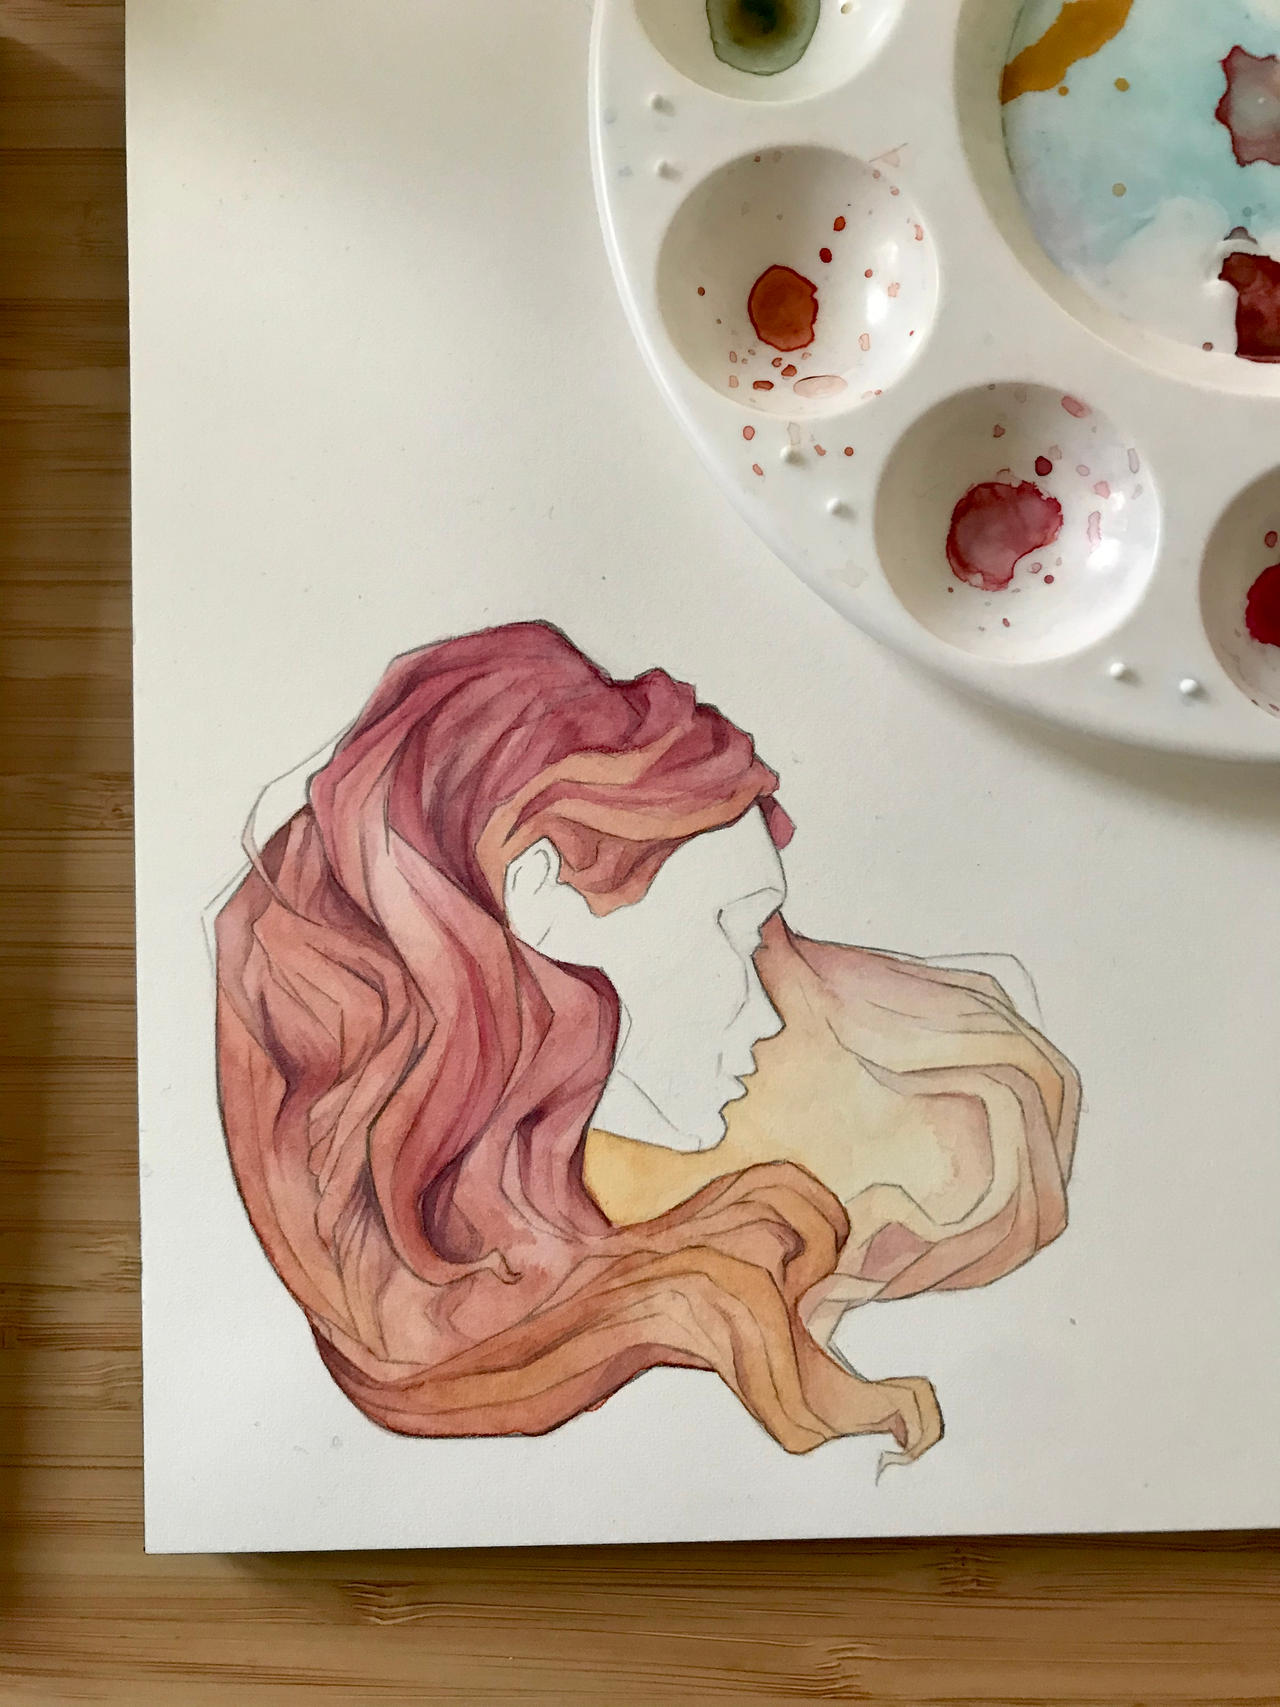 Hair Colour Study - Pink to Golden